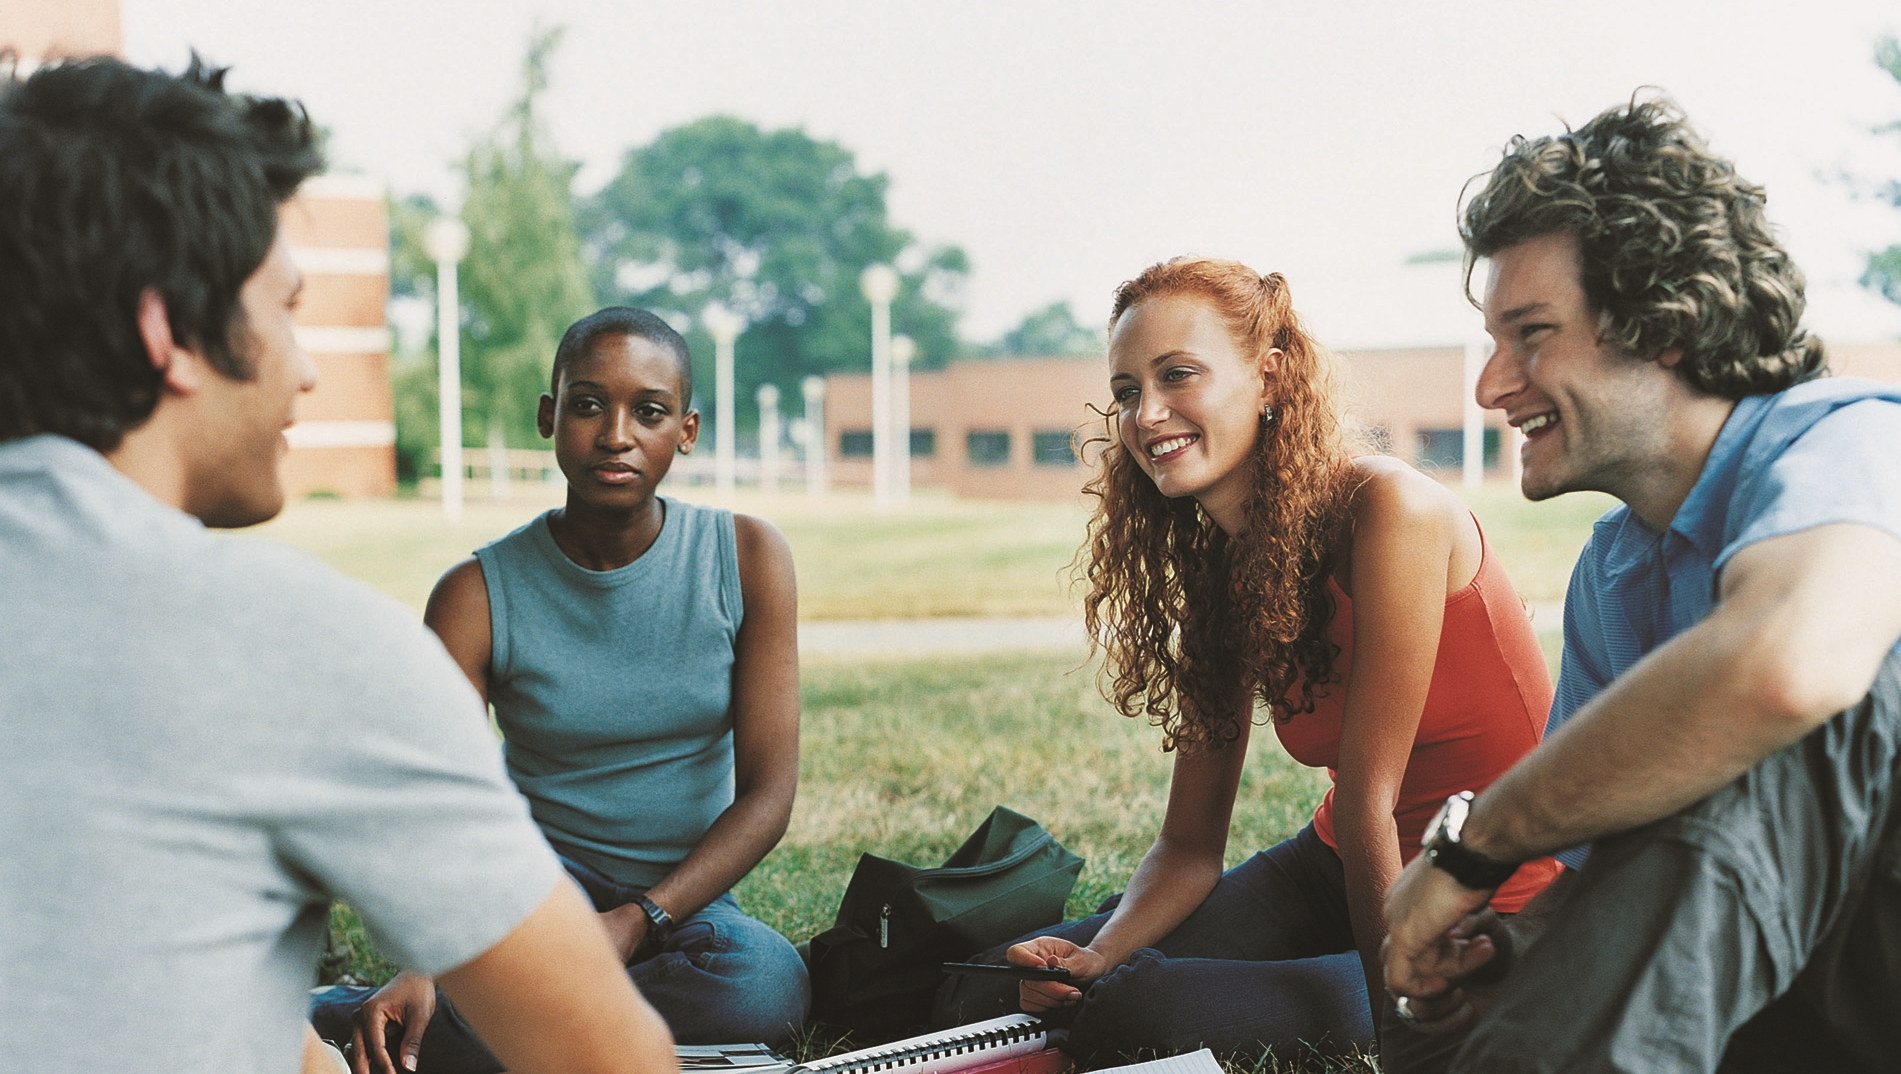 Multiracial Students Stock Photos, Royalty-Free Images & Vectors ...